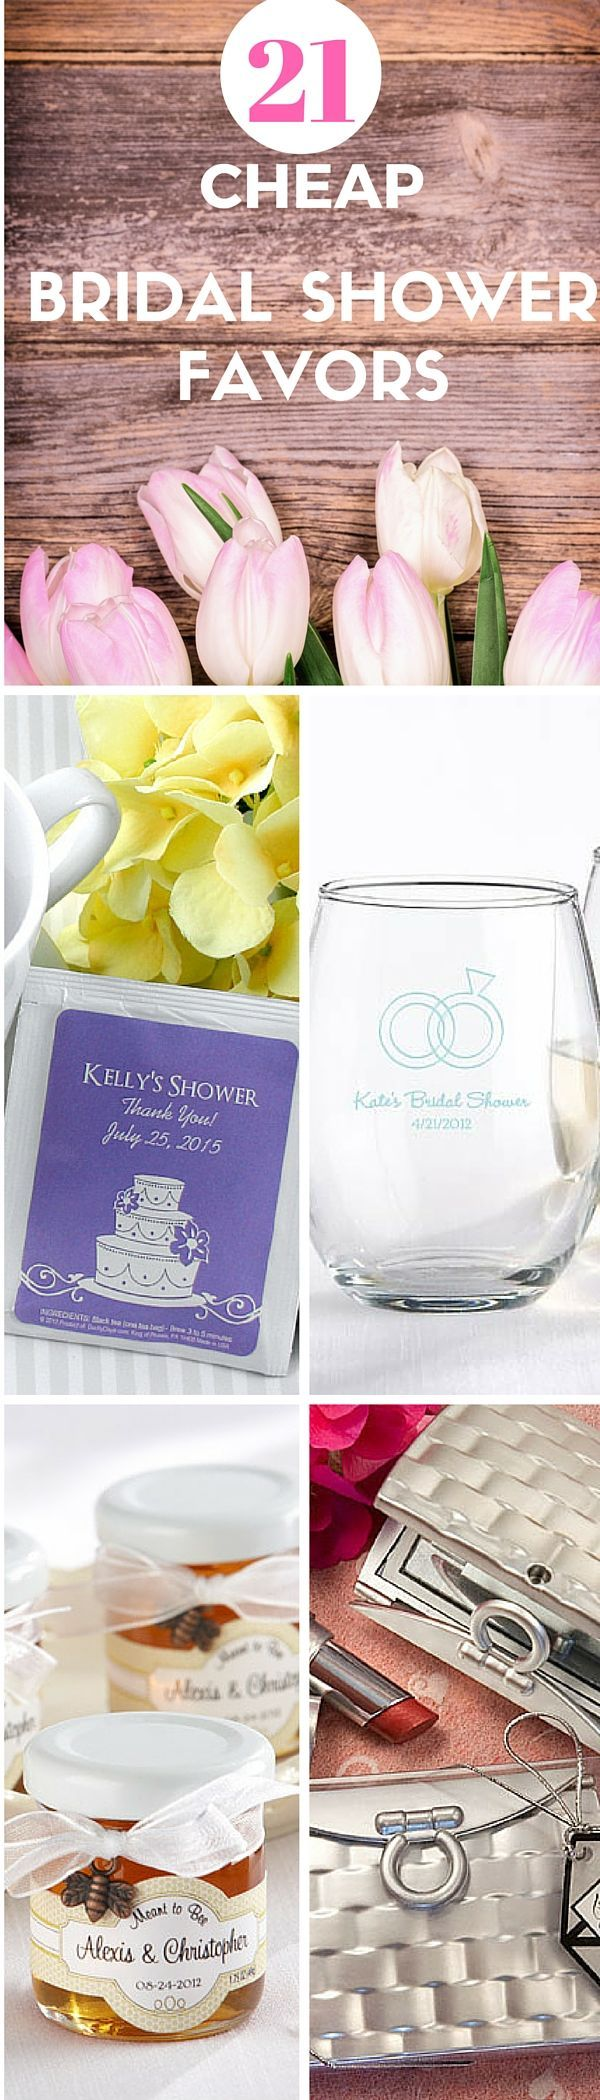 A collection of inexpensive Bridal Shower Favor ideas both DIY and to order